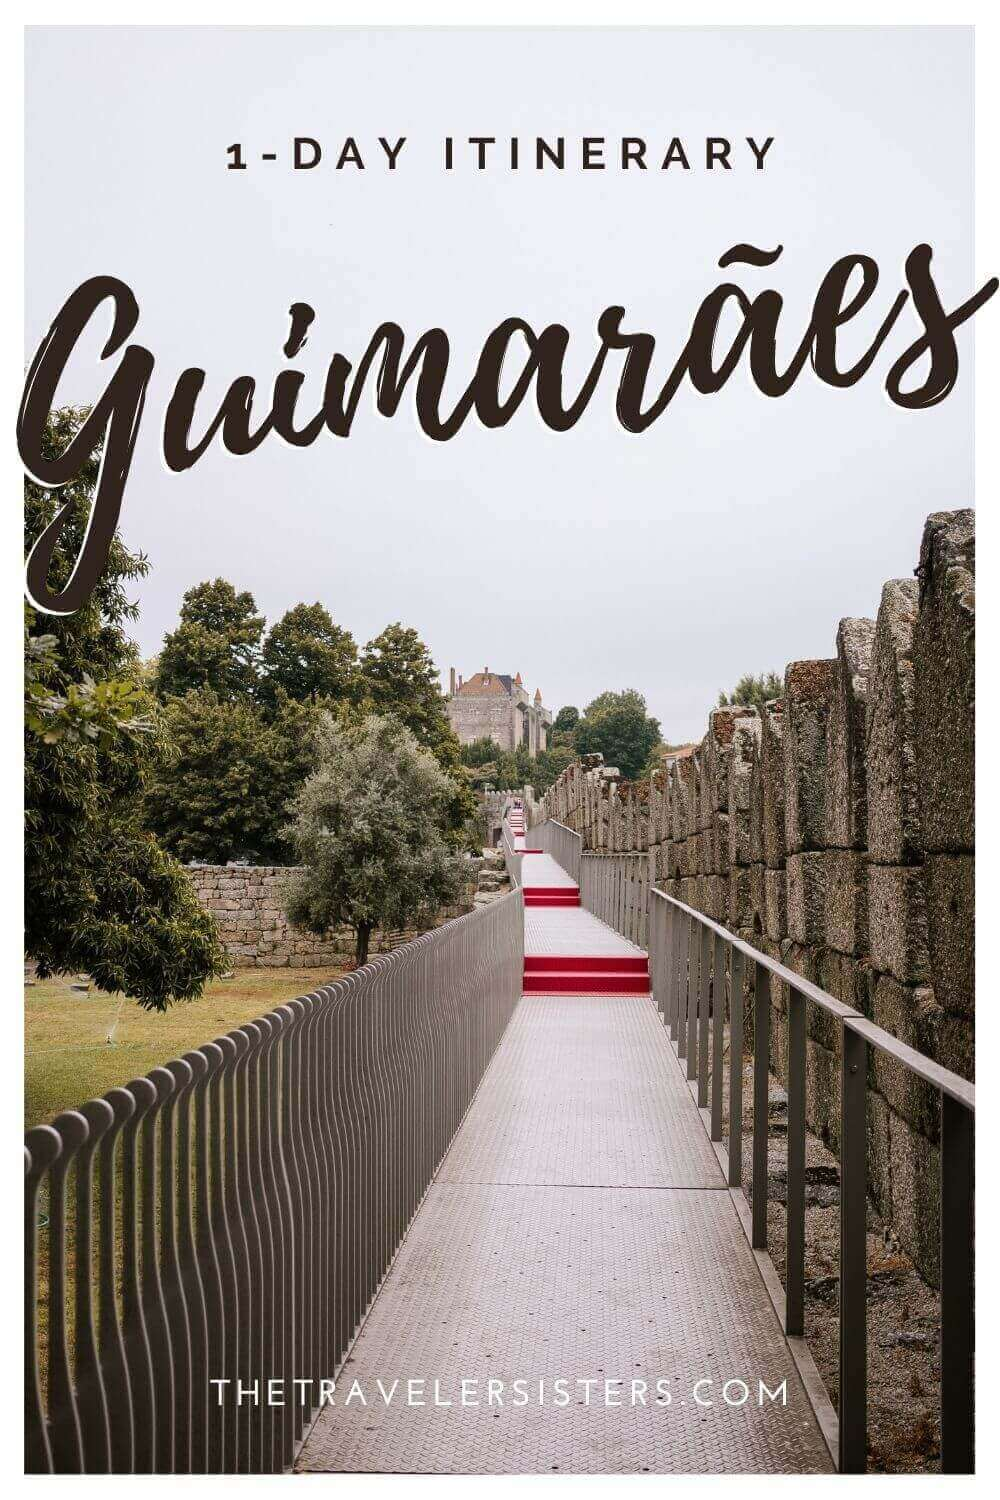 Guimaraes-10-places-to-visit-in-itinerary-2